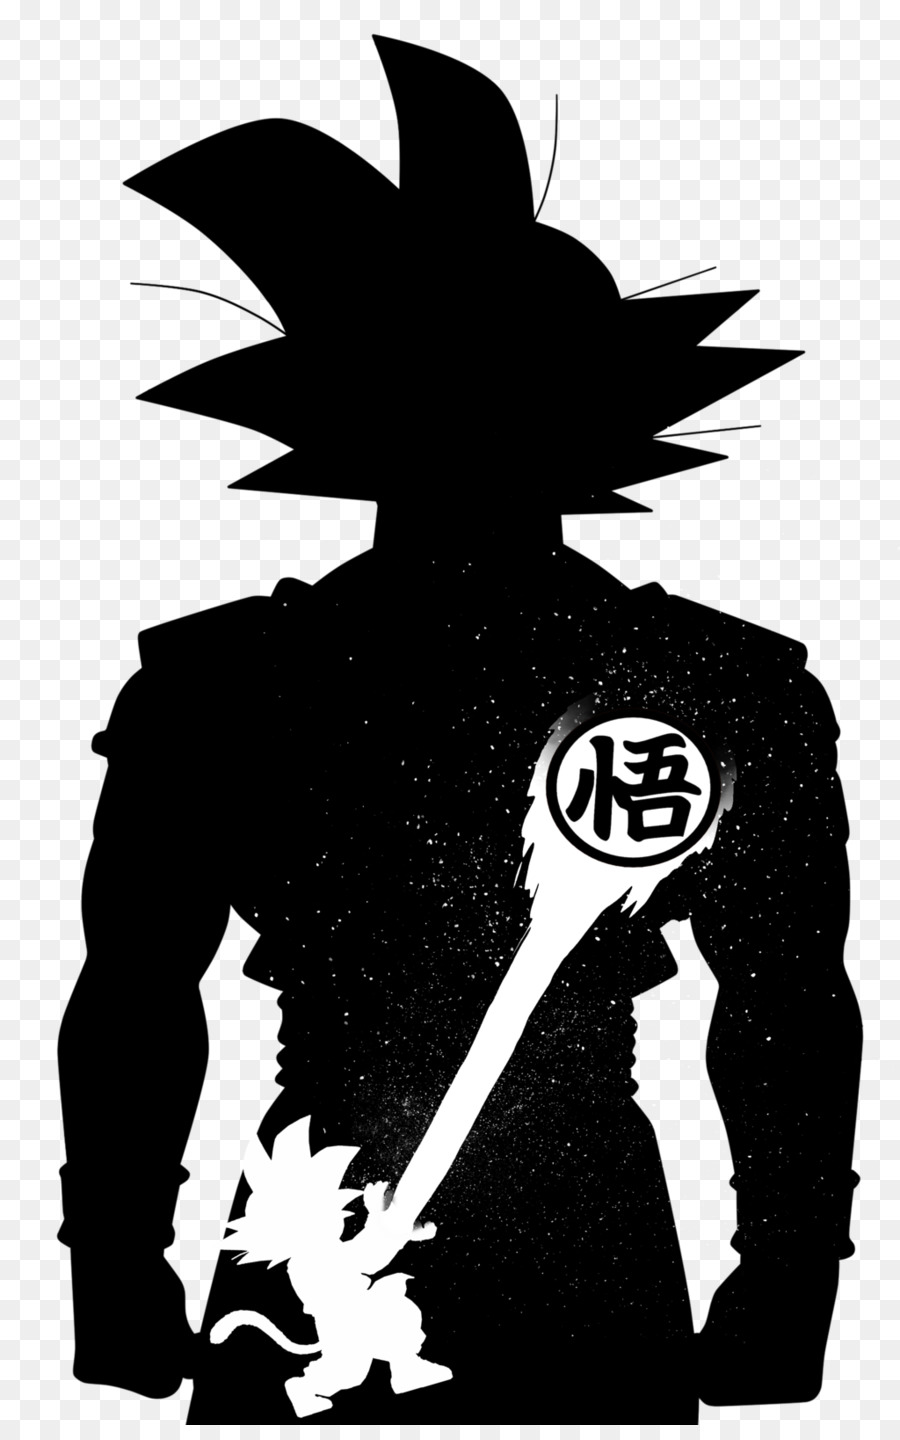 Goku vegeta gohan black and white silhouette png